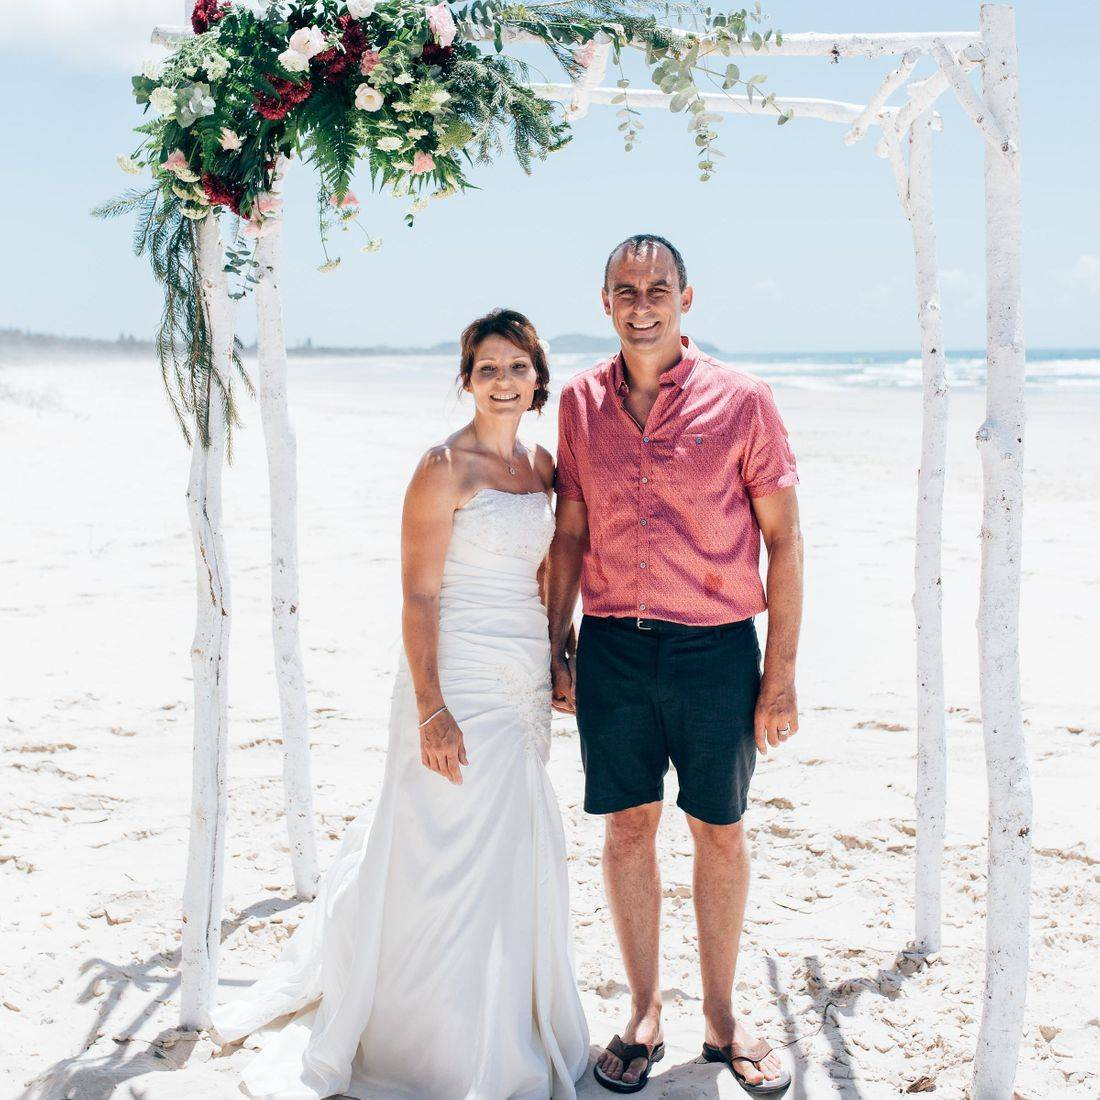 Karen and Andy's beach wedding